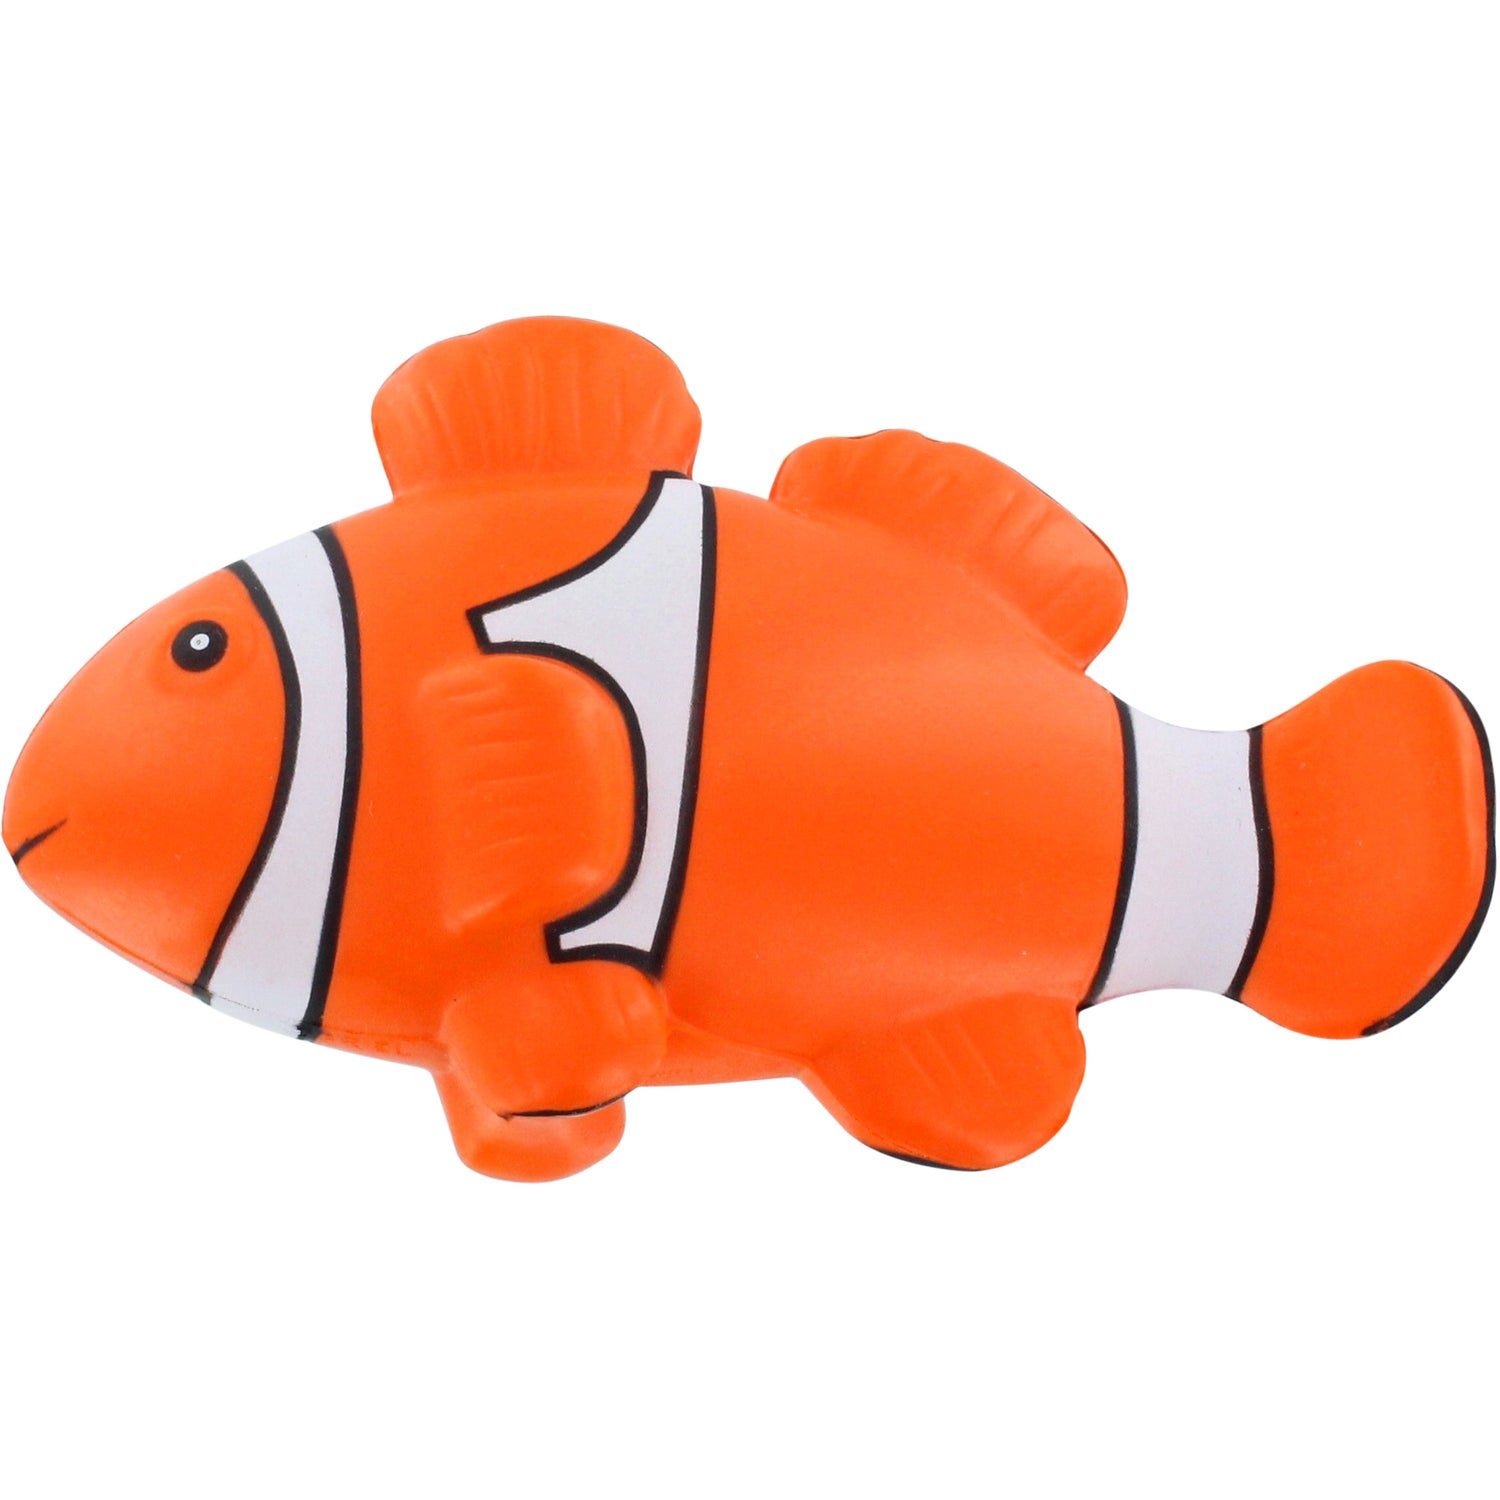 Clown Fish Stress Ball